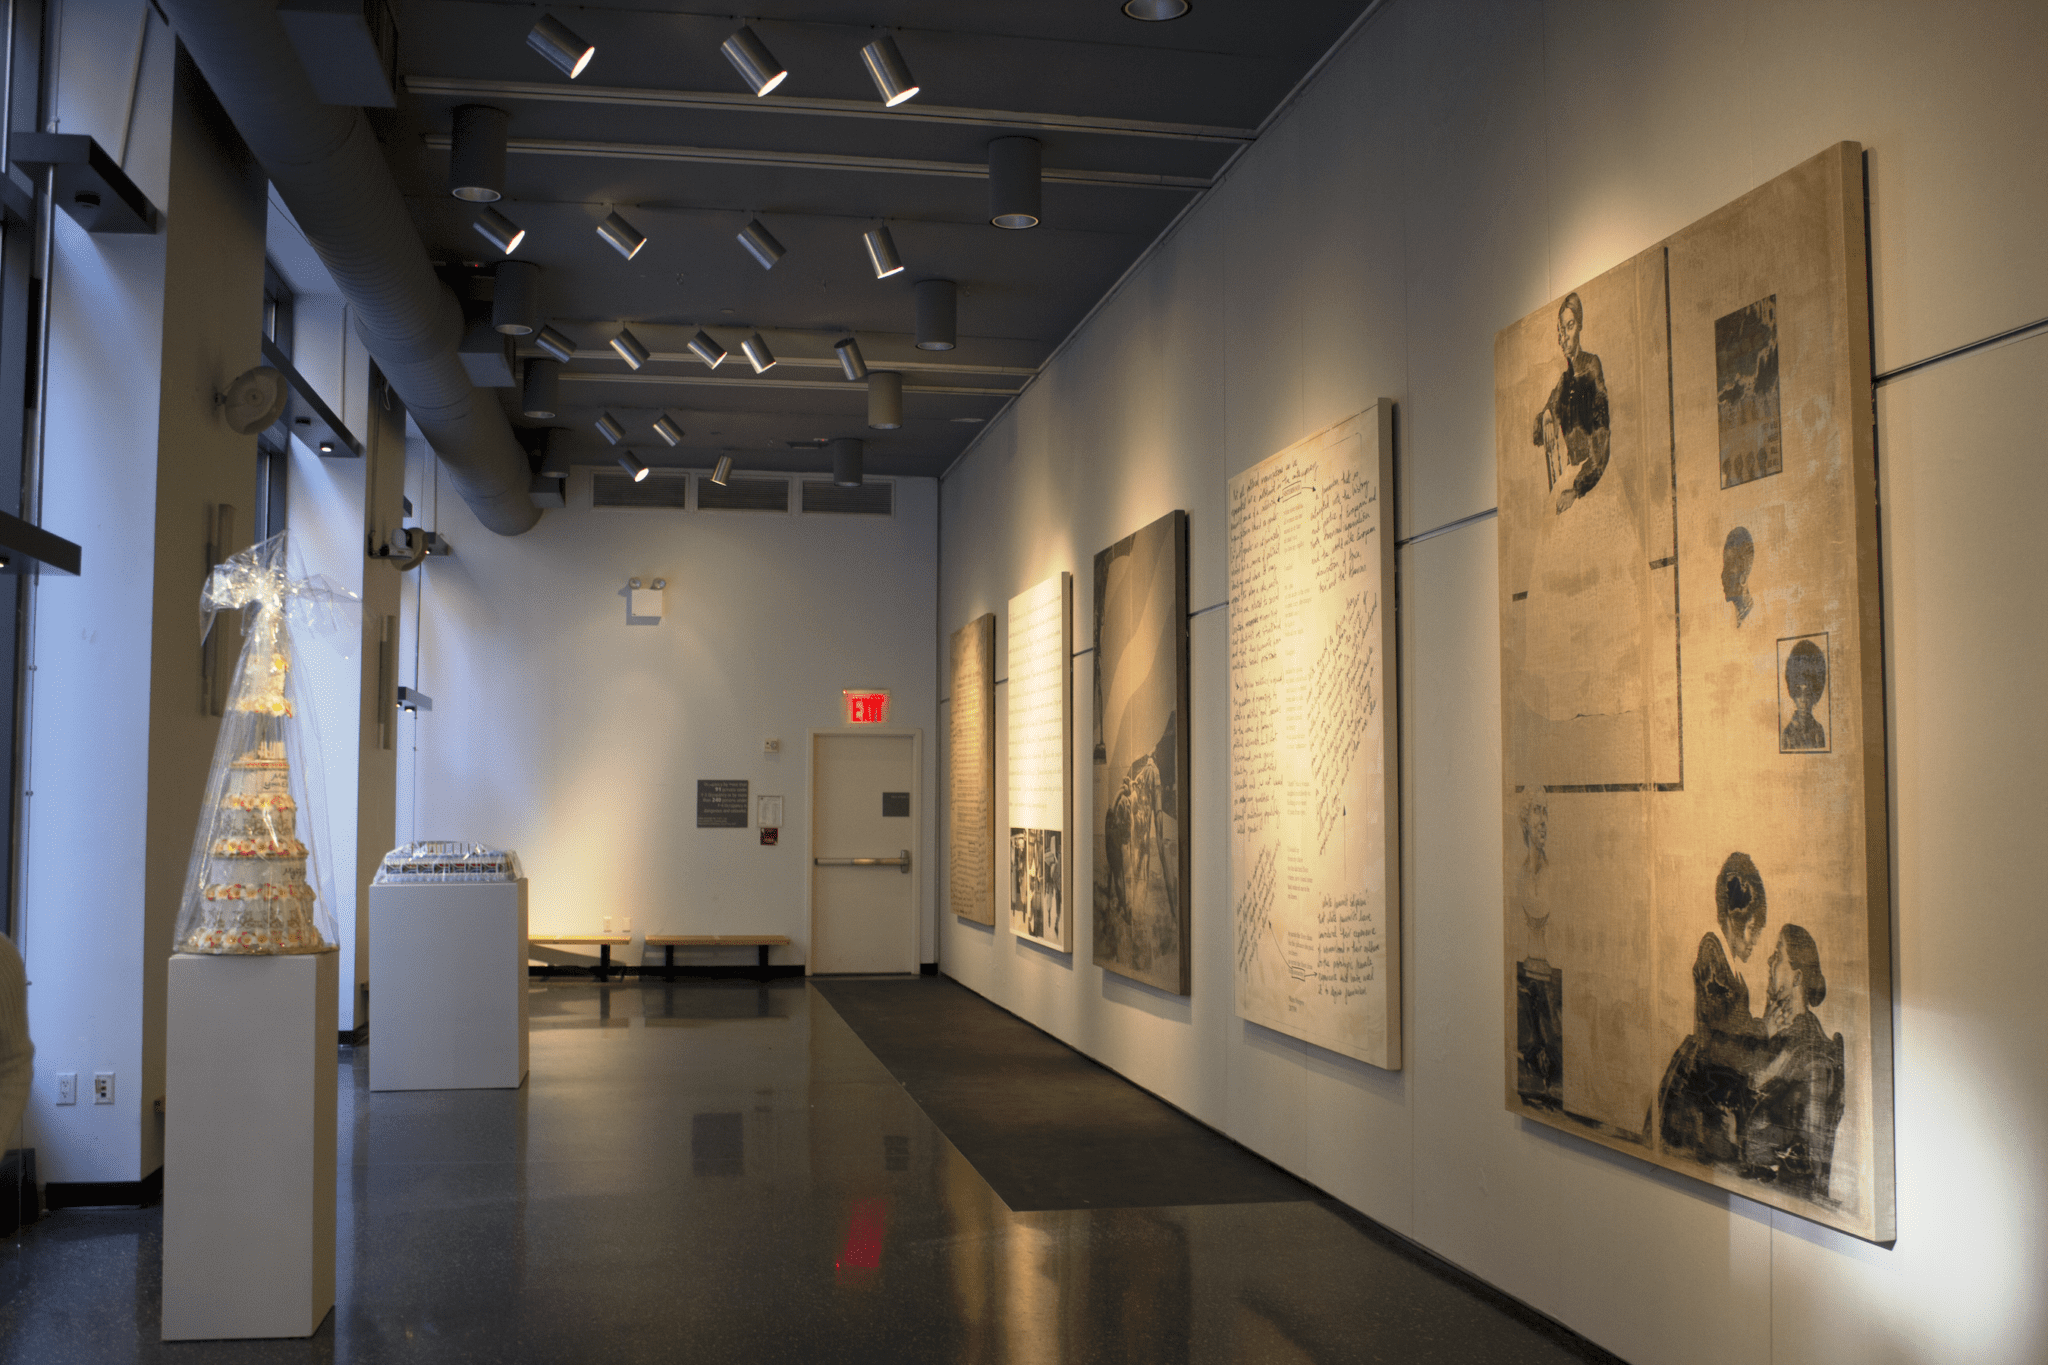 Photograph of a gallery space, the wall on the right has five large canvases hung on it, and the lefthand side has two pedestals with cake sculptures atop it.